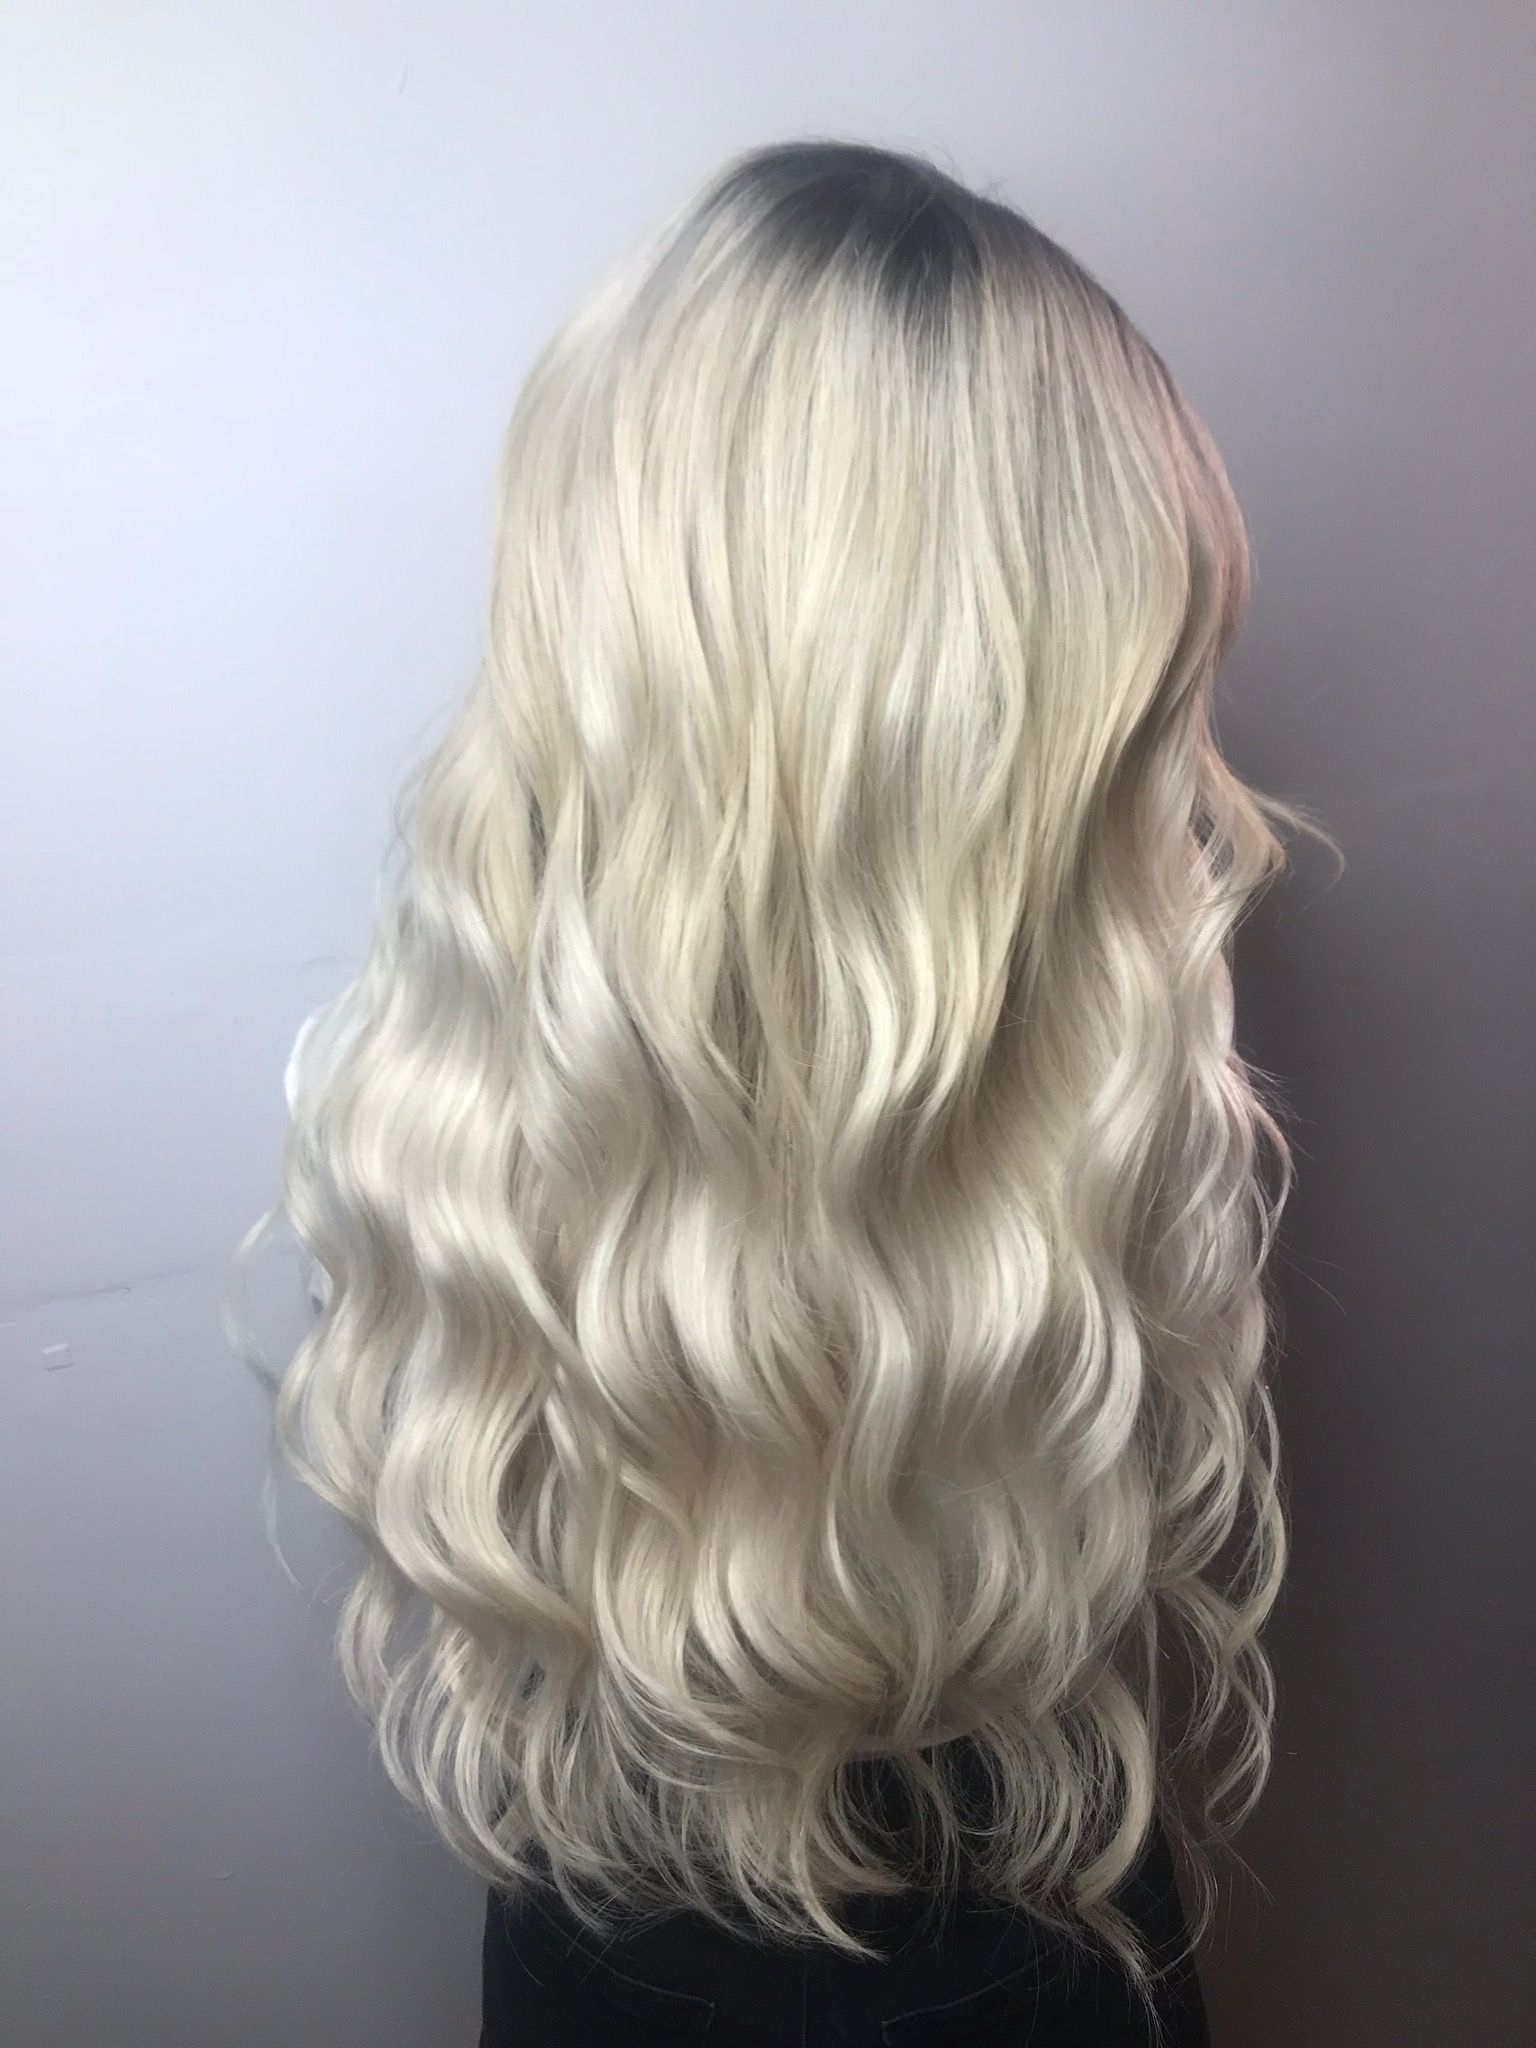 Blonde Blondes Bright Blondes Creamy Blondes Waves Style Ashy Throughout Well Known Creamy Blonde Waves With Bangs (View 7 of 20)